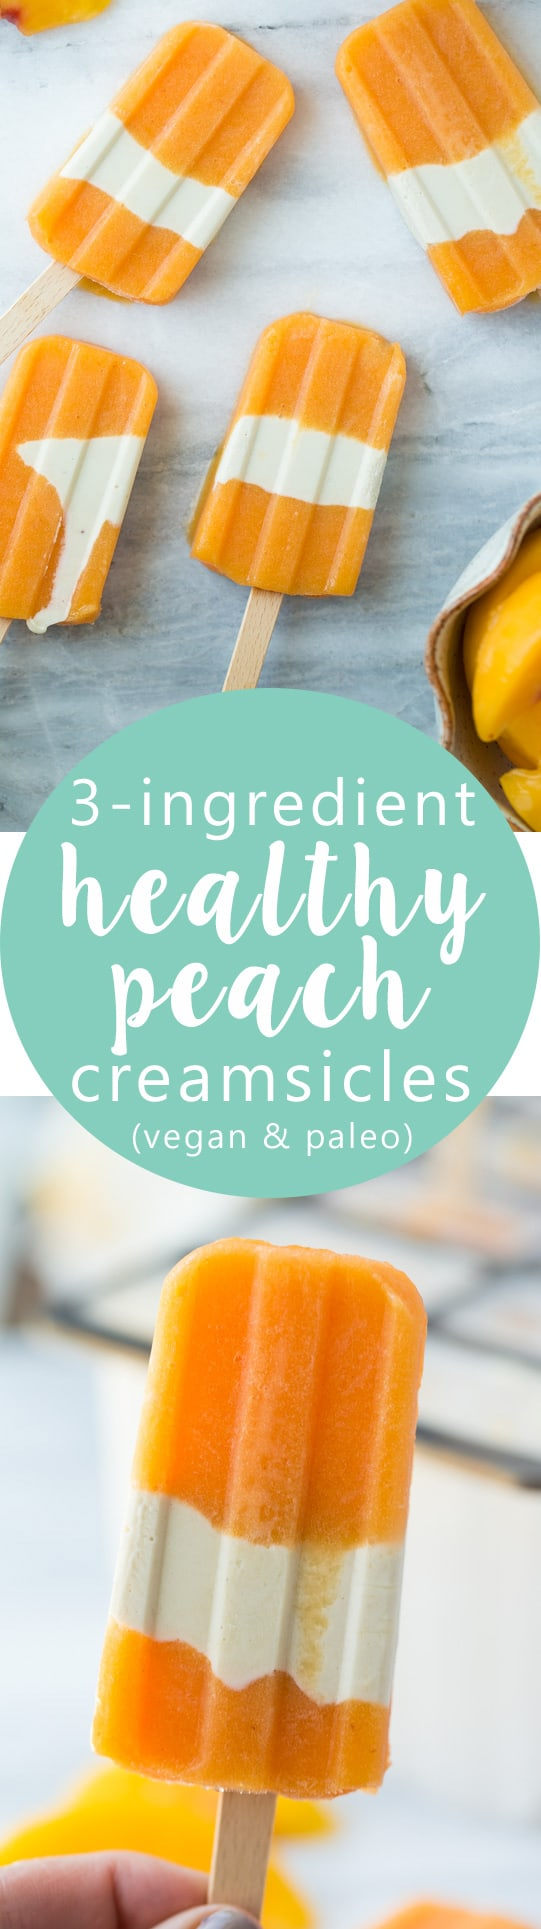 3-Ingredient Healthy Peach Creamsicles! So easy to make and perfect for a healthy summer treat!